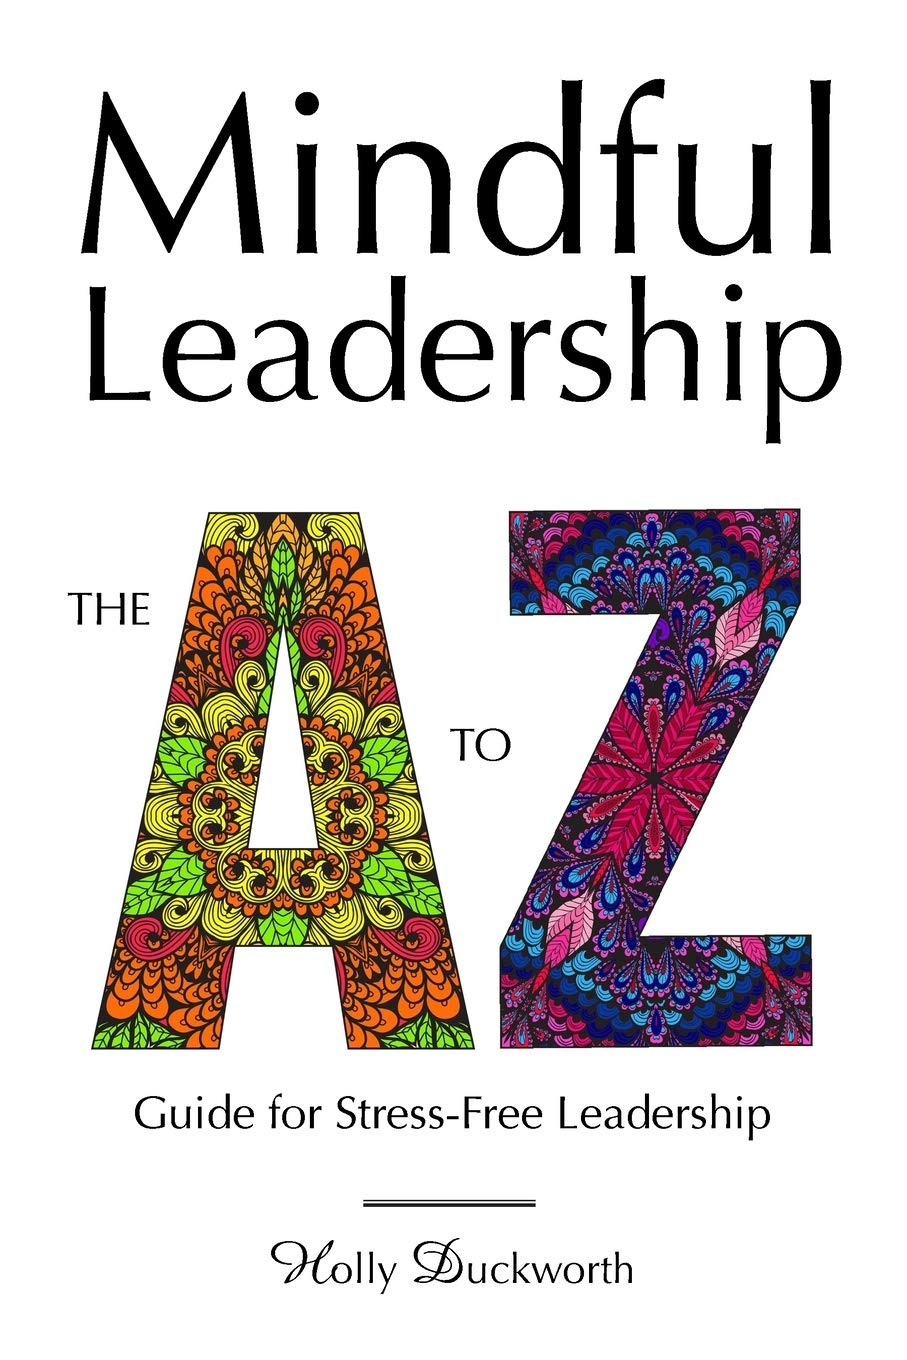 7 Practices to be a Mindful Leader